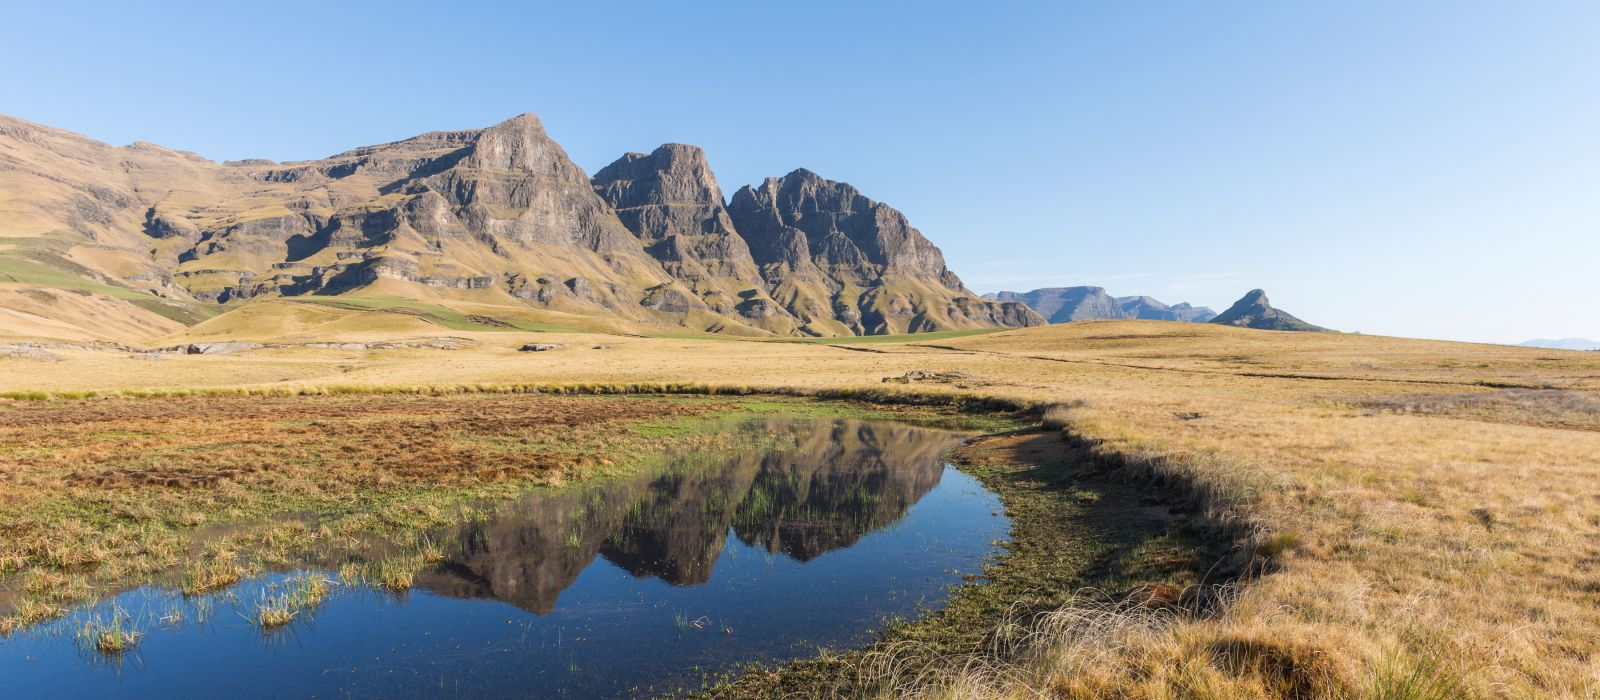 Mountain reflection in the lake, South Africa